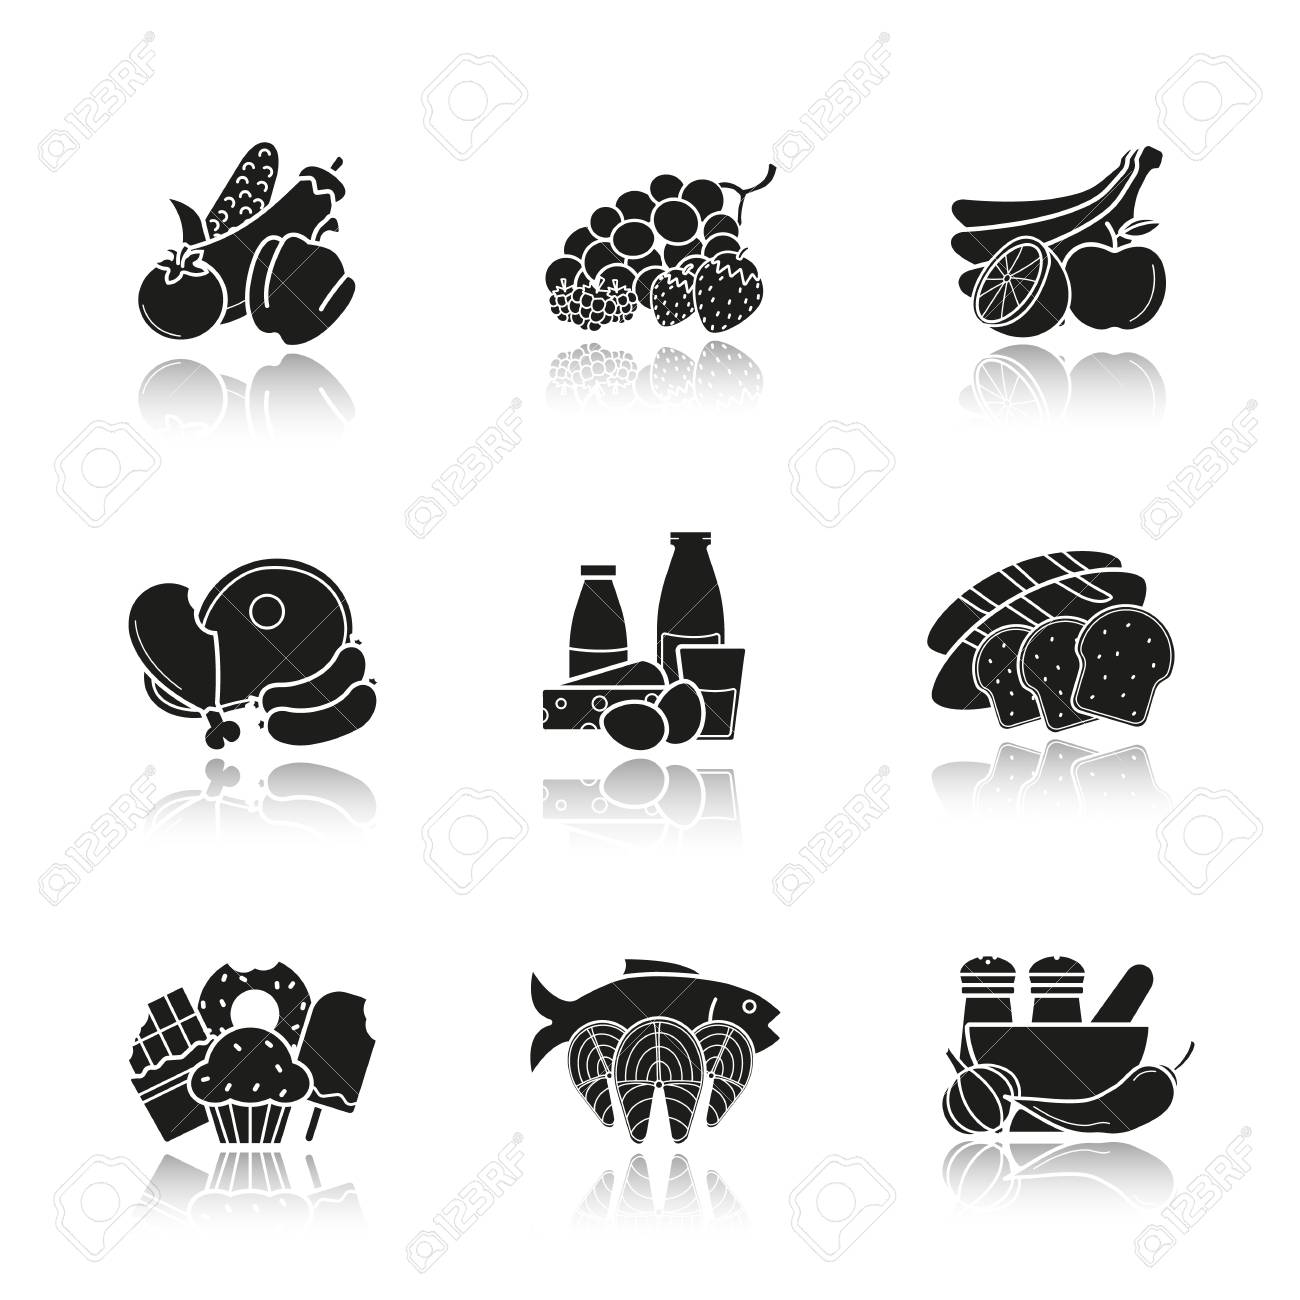 grocery store products categories drop shadow black icons set